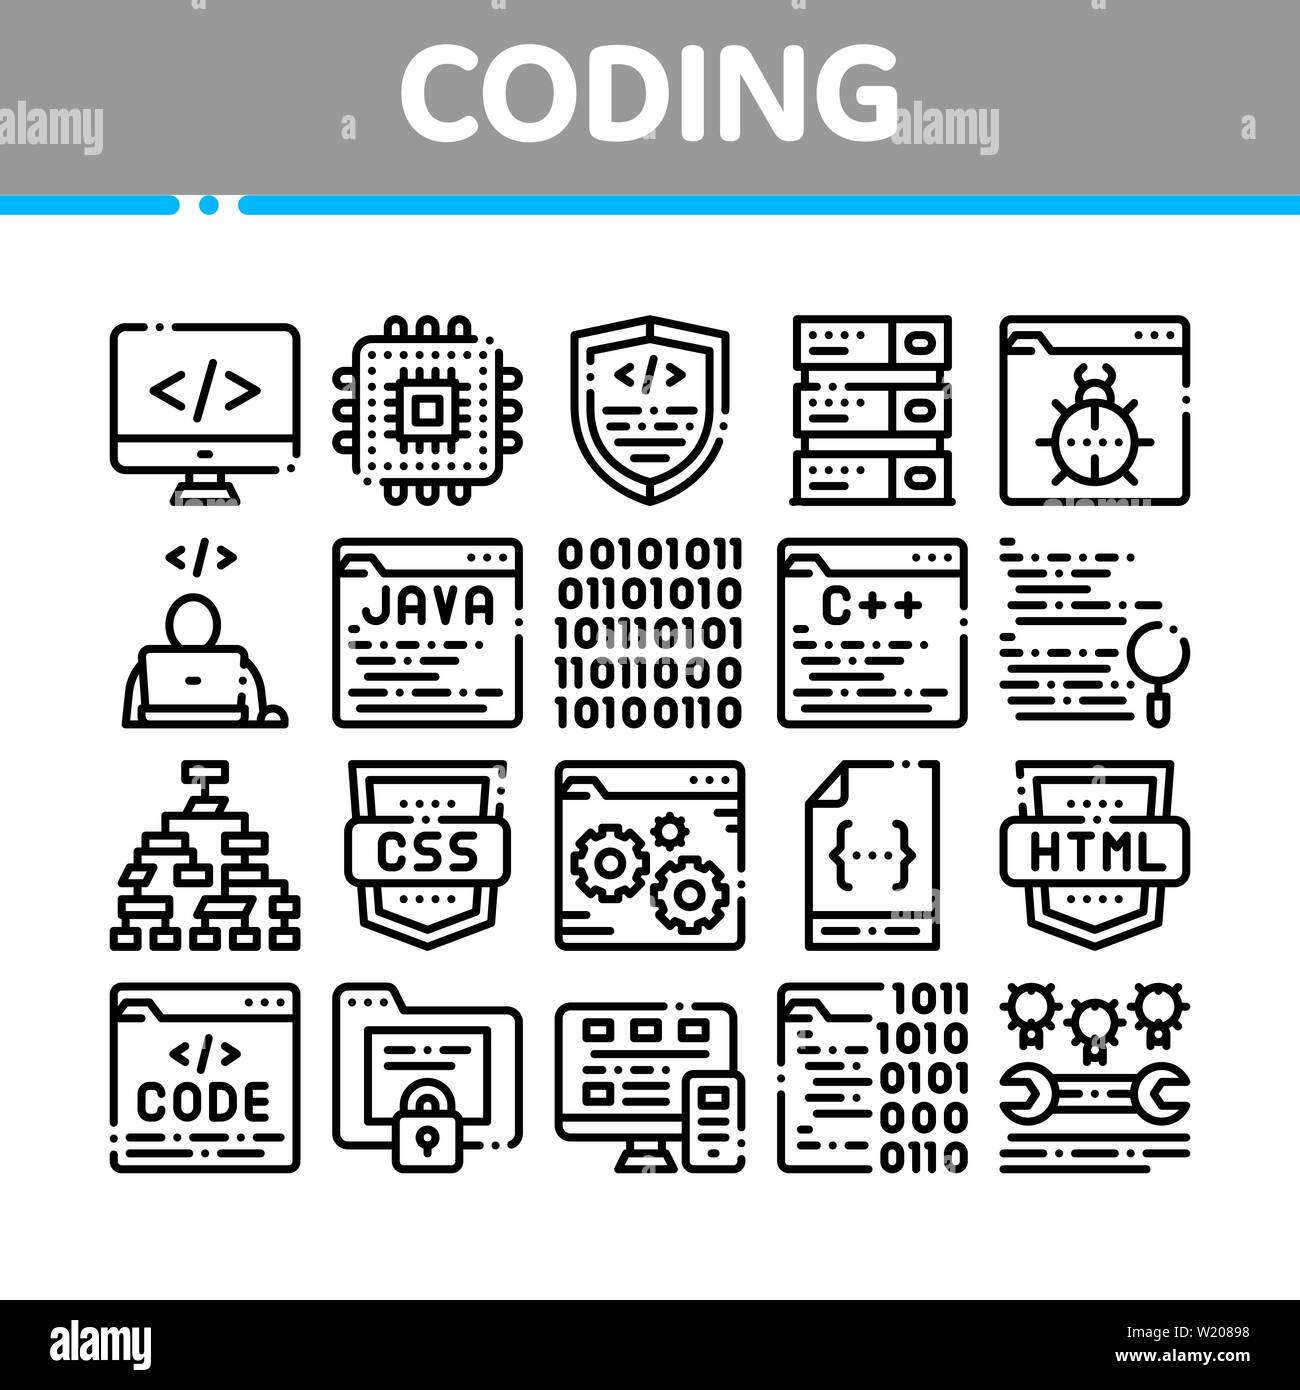 Coding System Vector Thin Line Icons Set - Stock Image